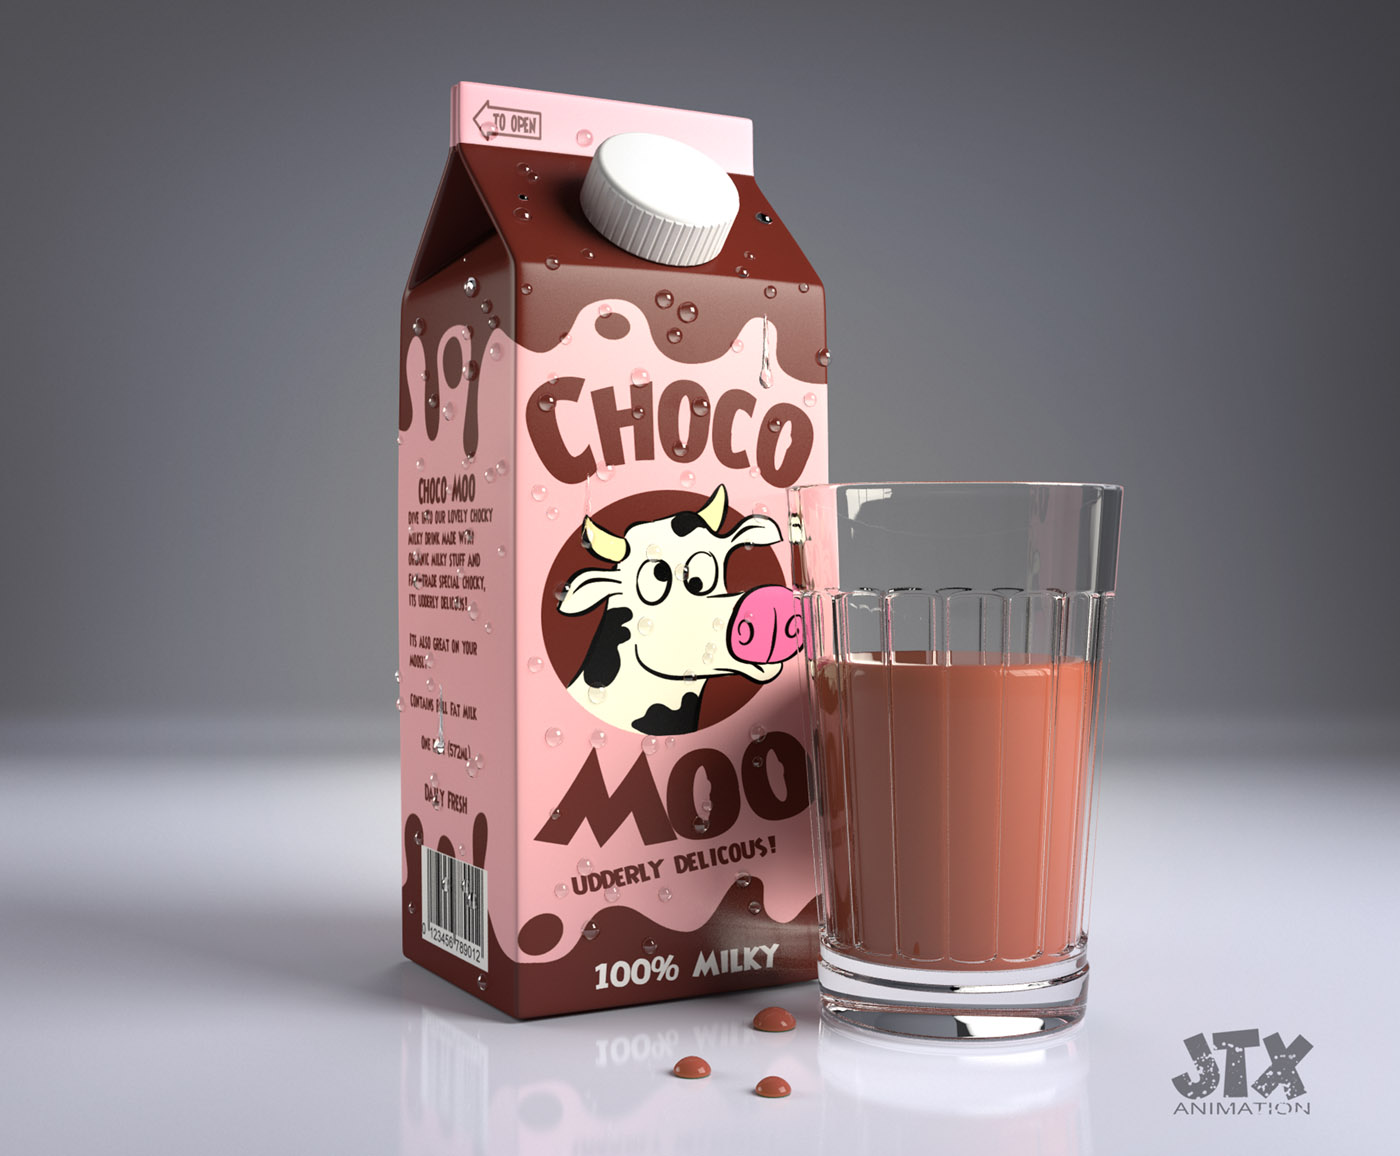 Studio shot of Chocomoo drink and glass created in vray